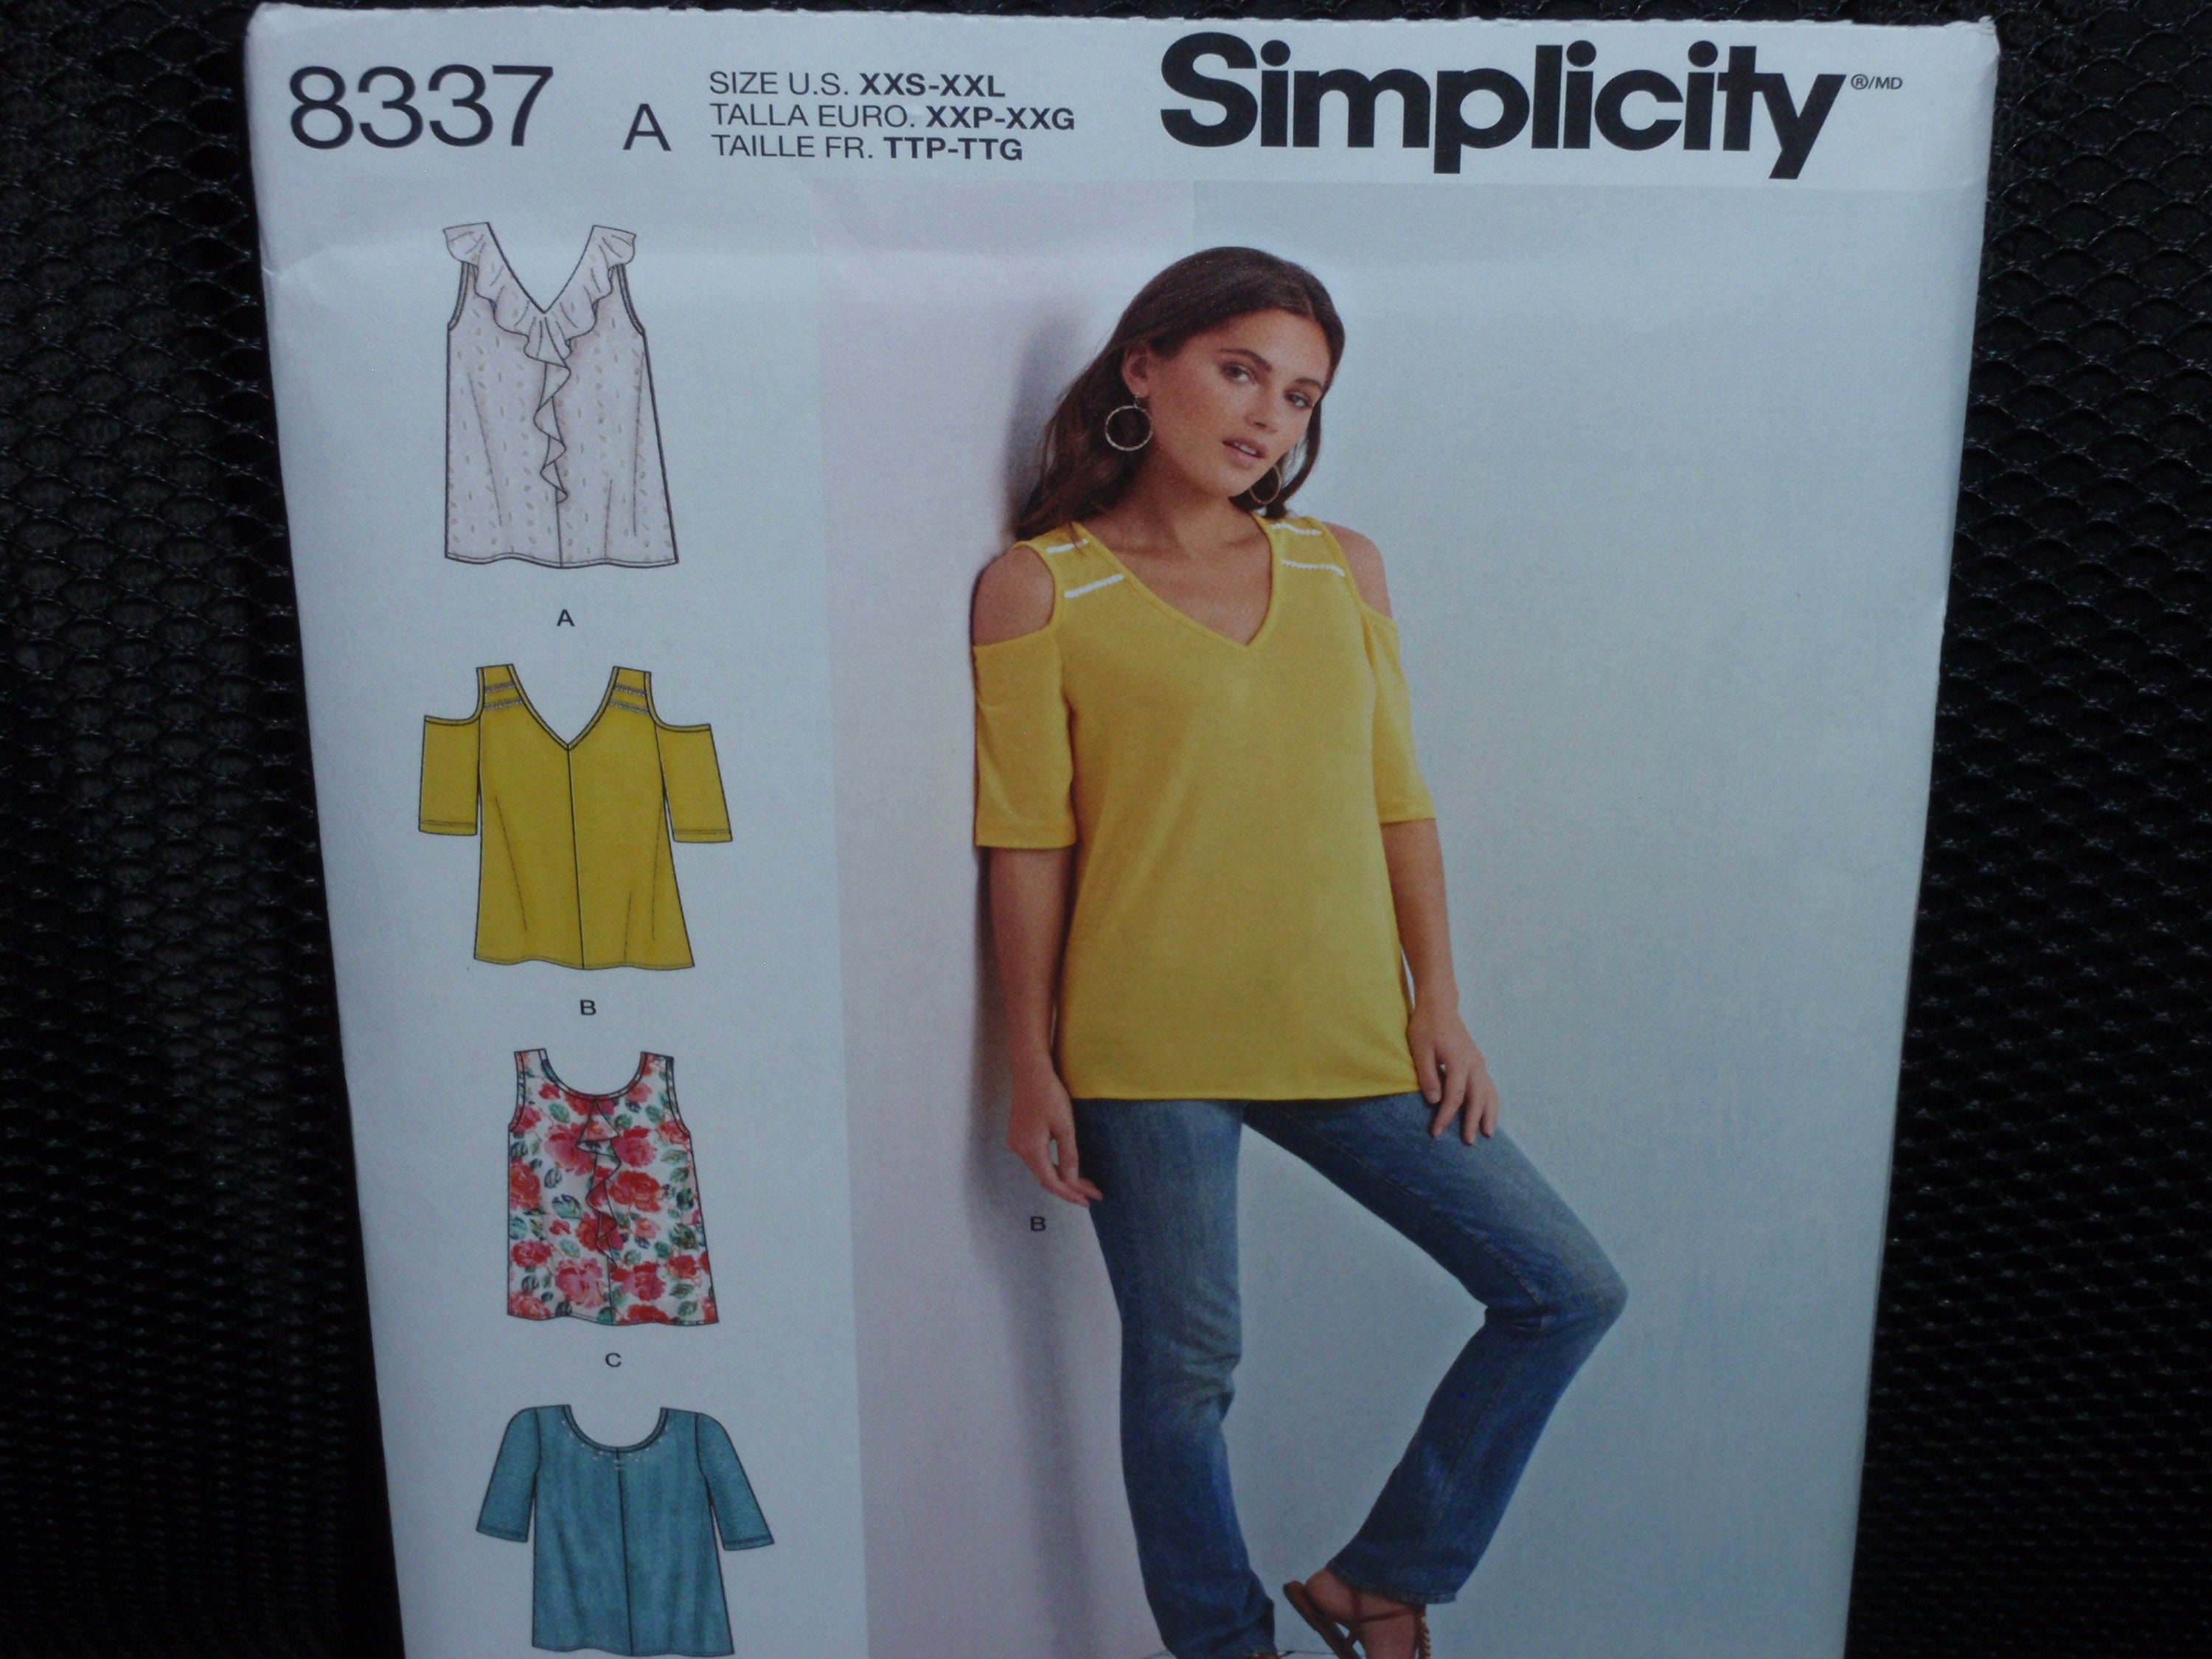 e91d805eb05a Simplicity 8337 Misses  Knit Shirts with Bodice and